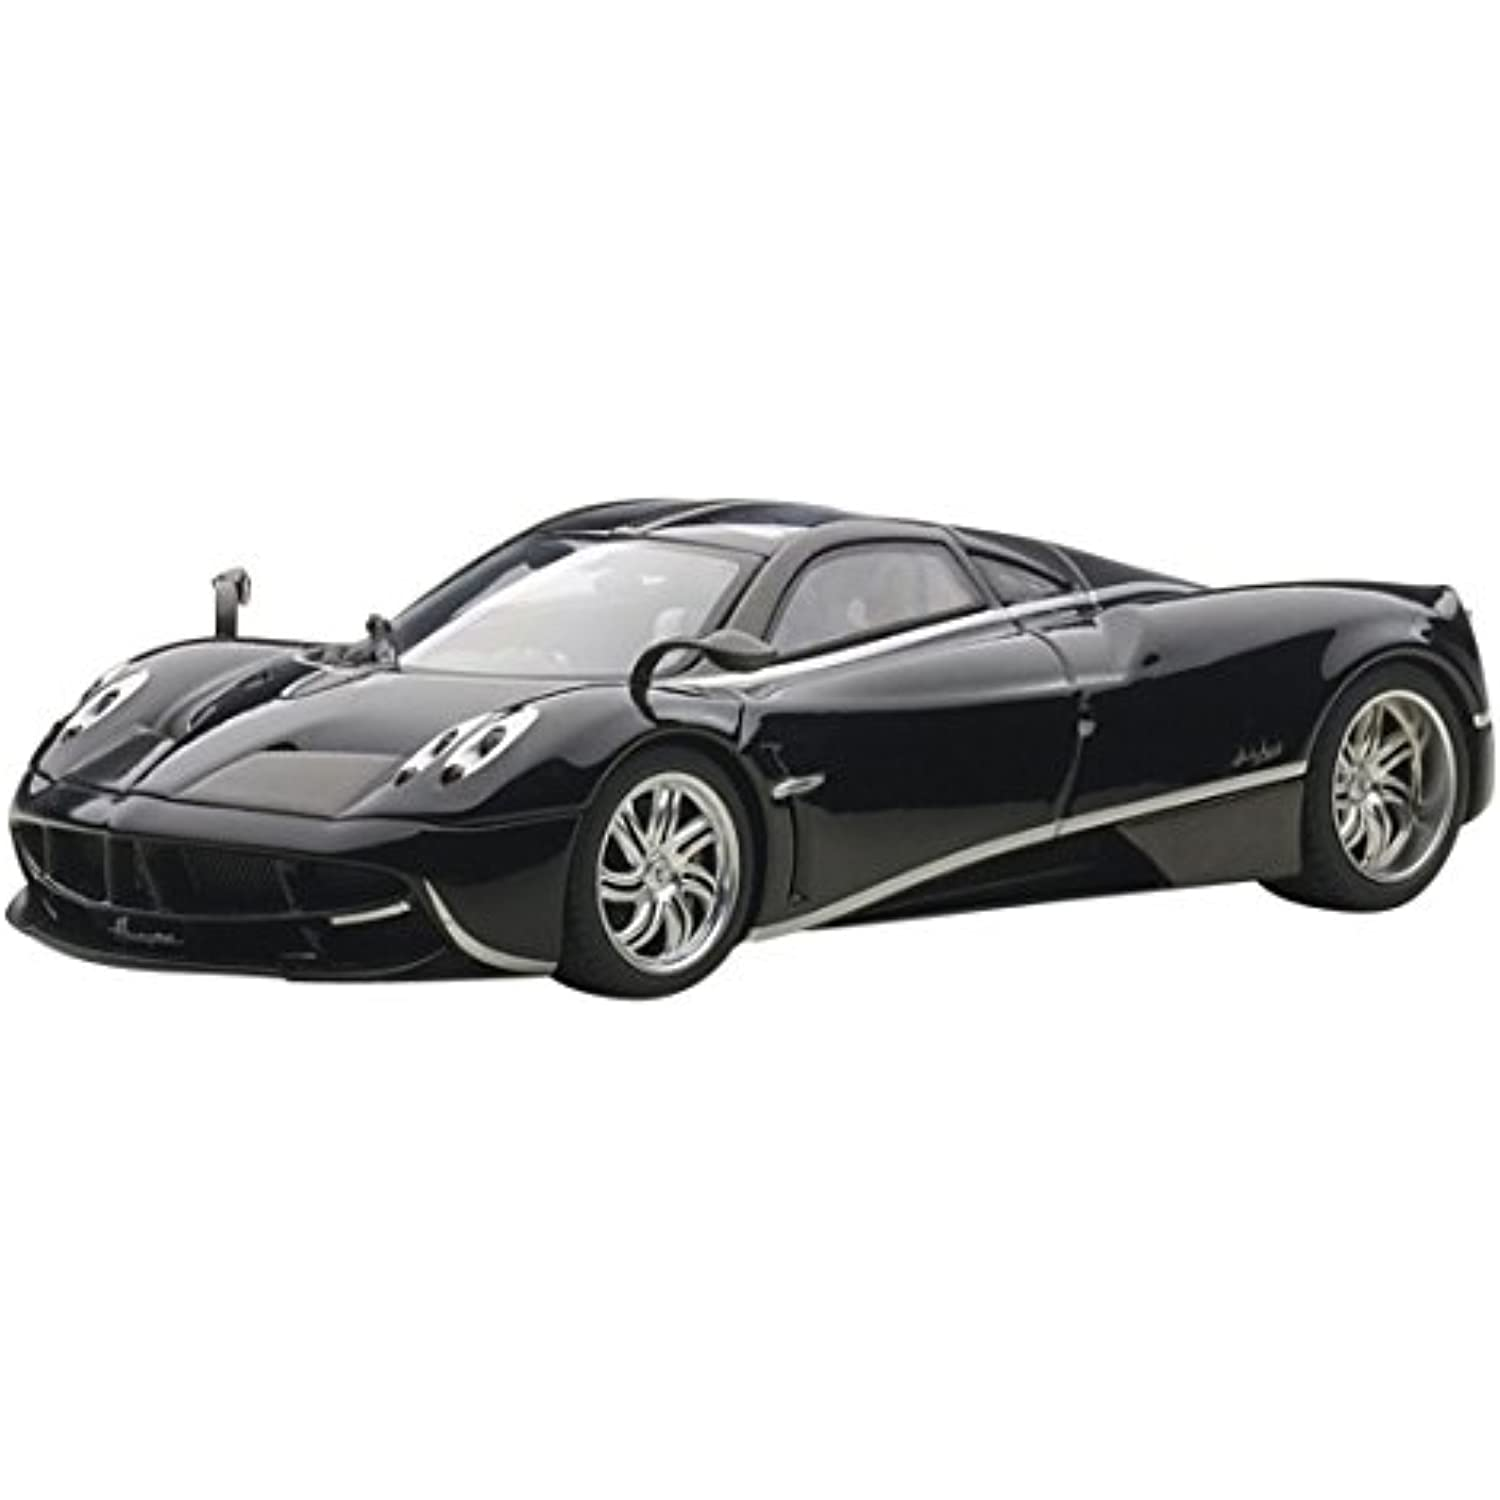 Pagani Huayra Black Black Black with Silver Stripes 1/43 by Autoart 58209 f1ee1d